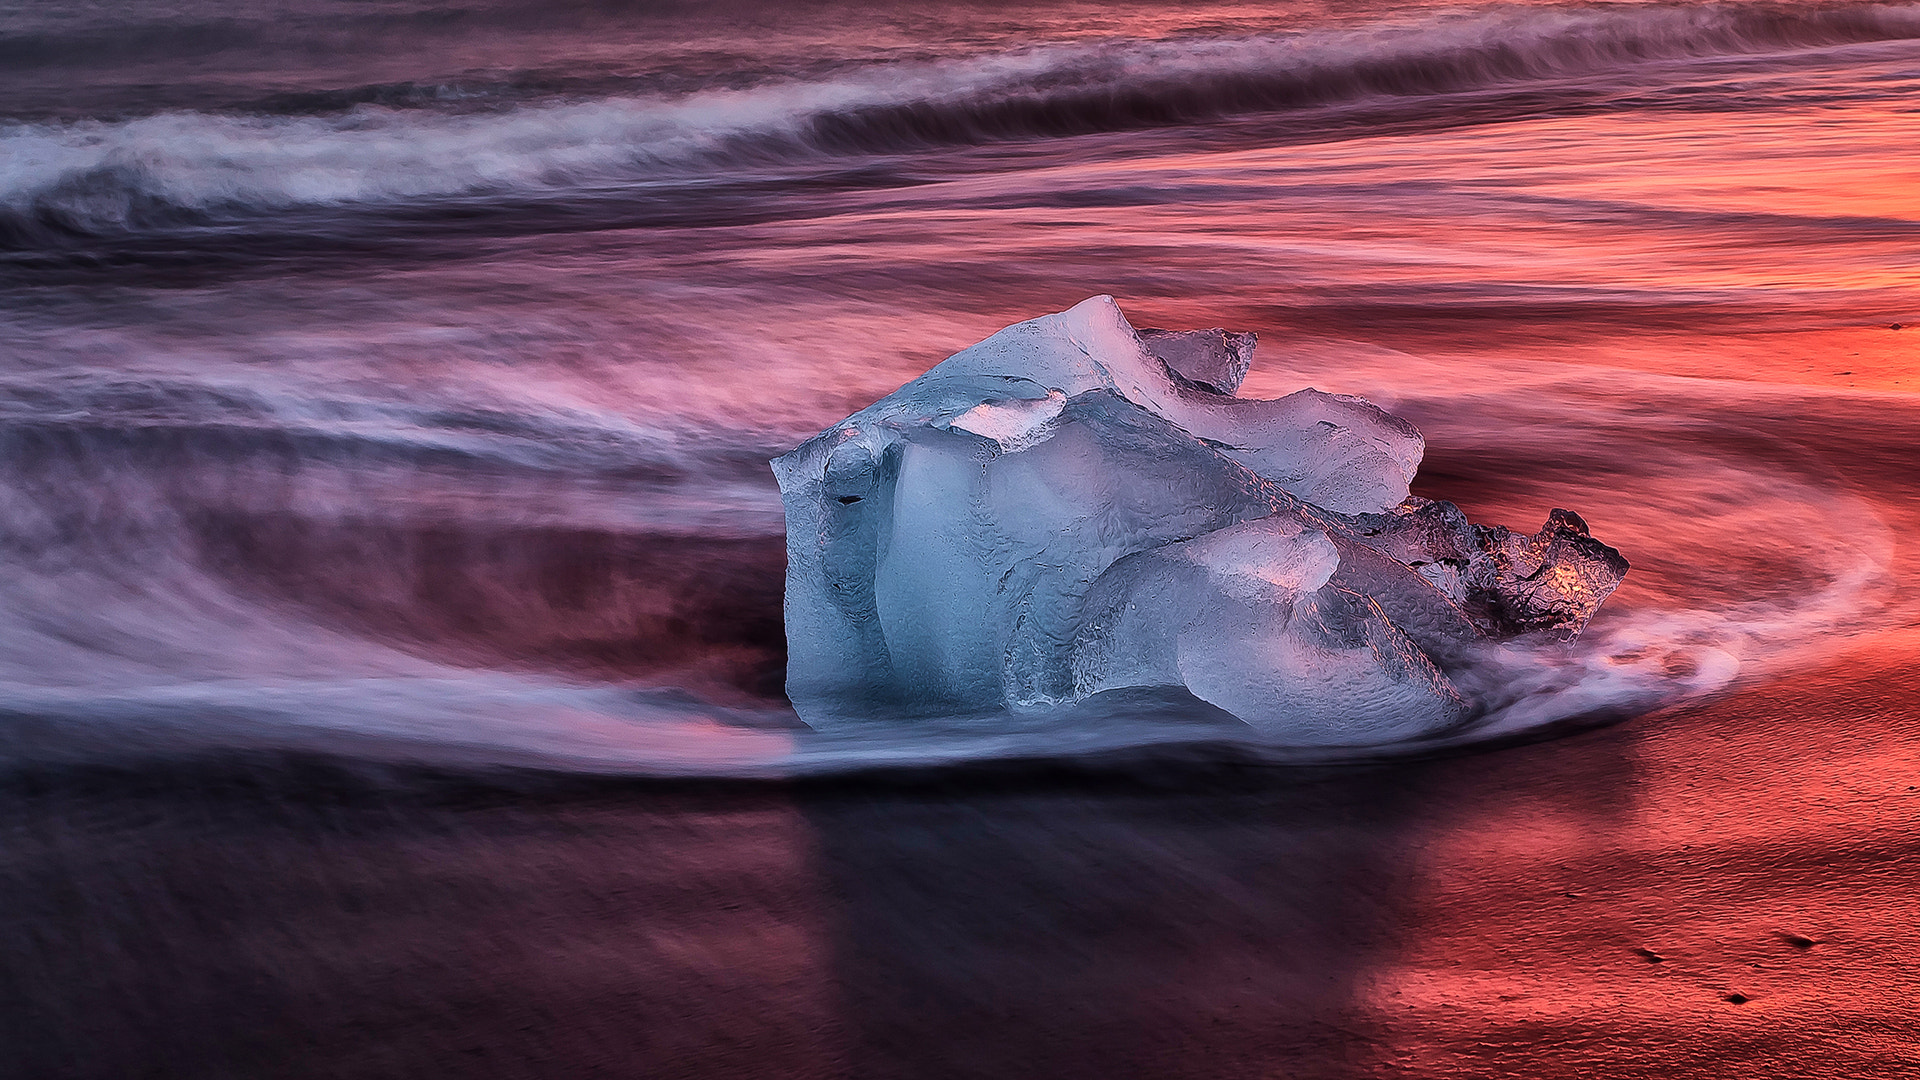 Photograph fire and ice by wim denijs on 500px